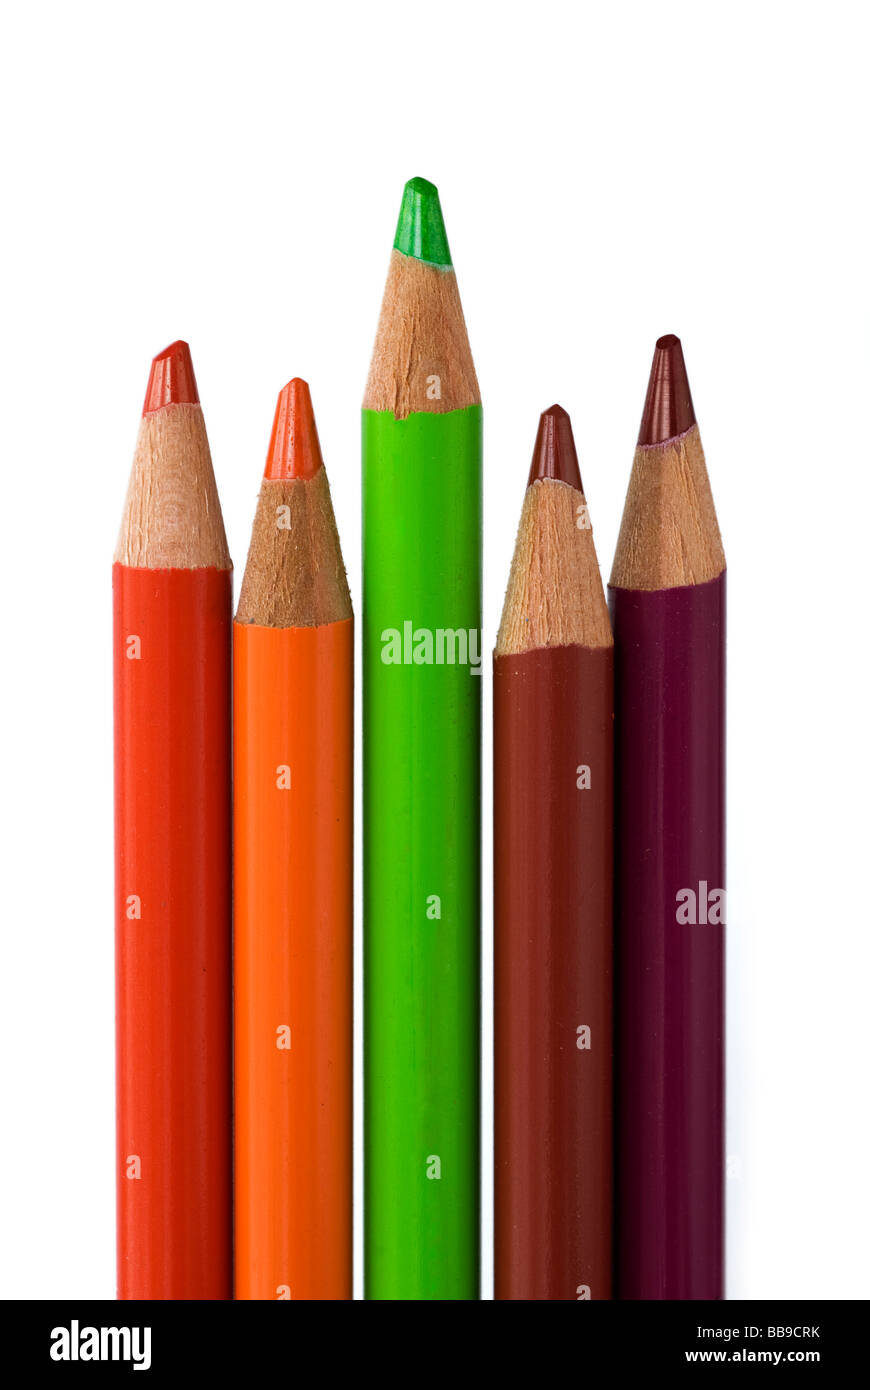 colored pencils, decision making - Stock Image